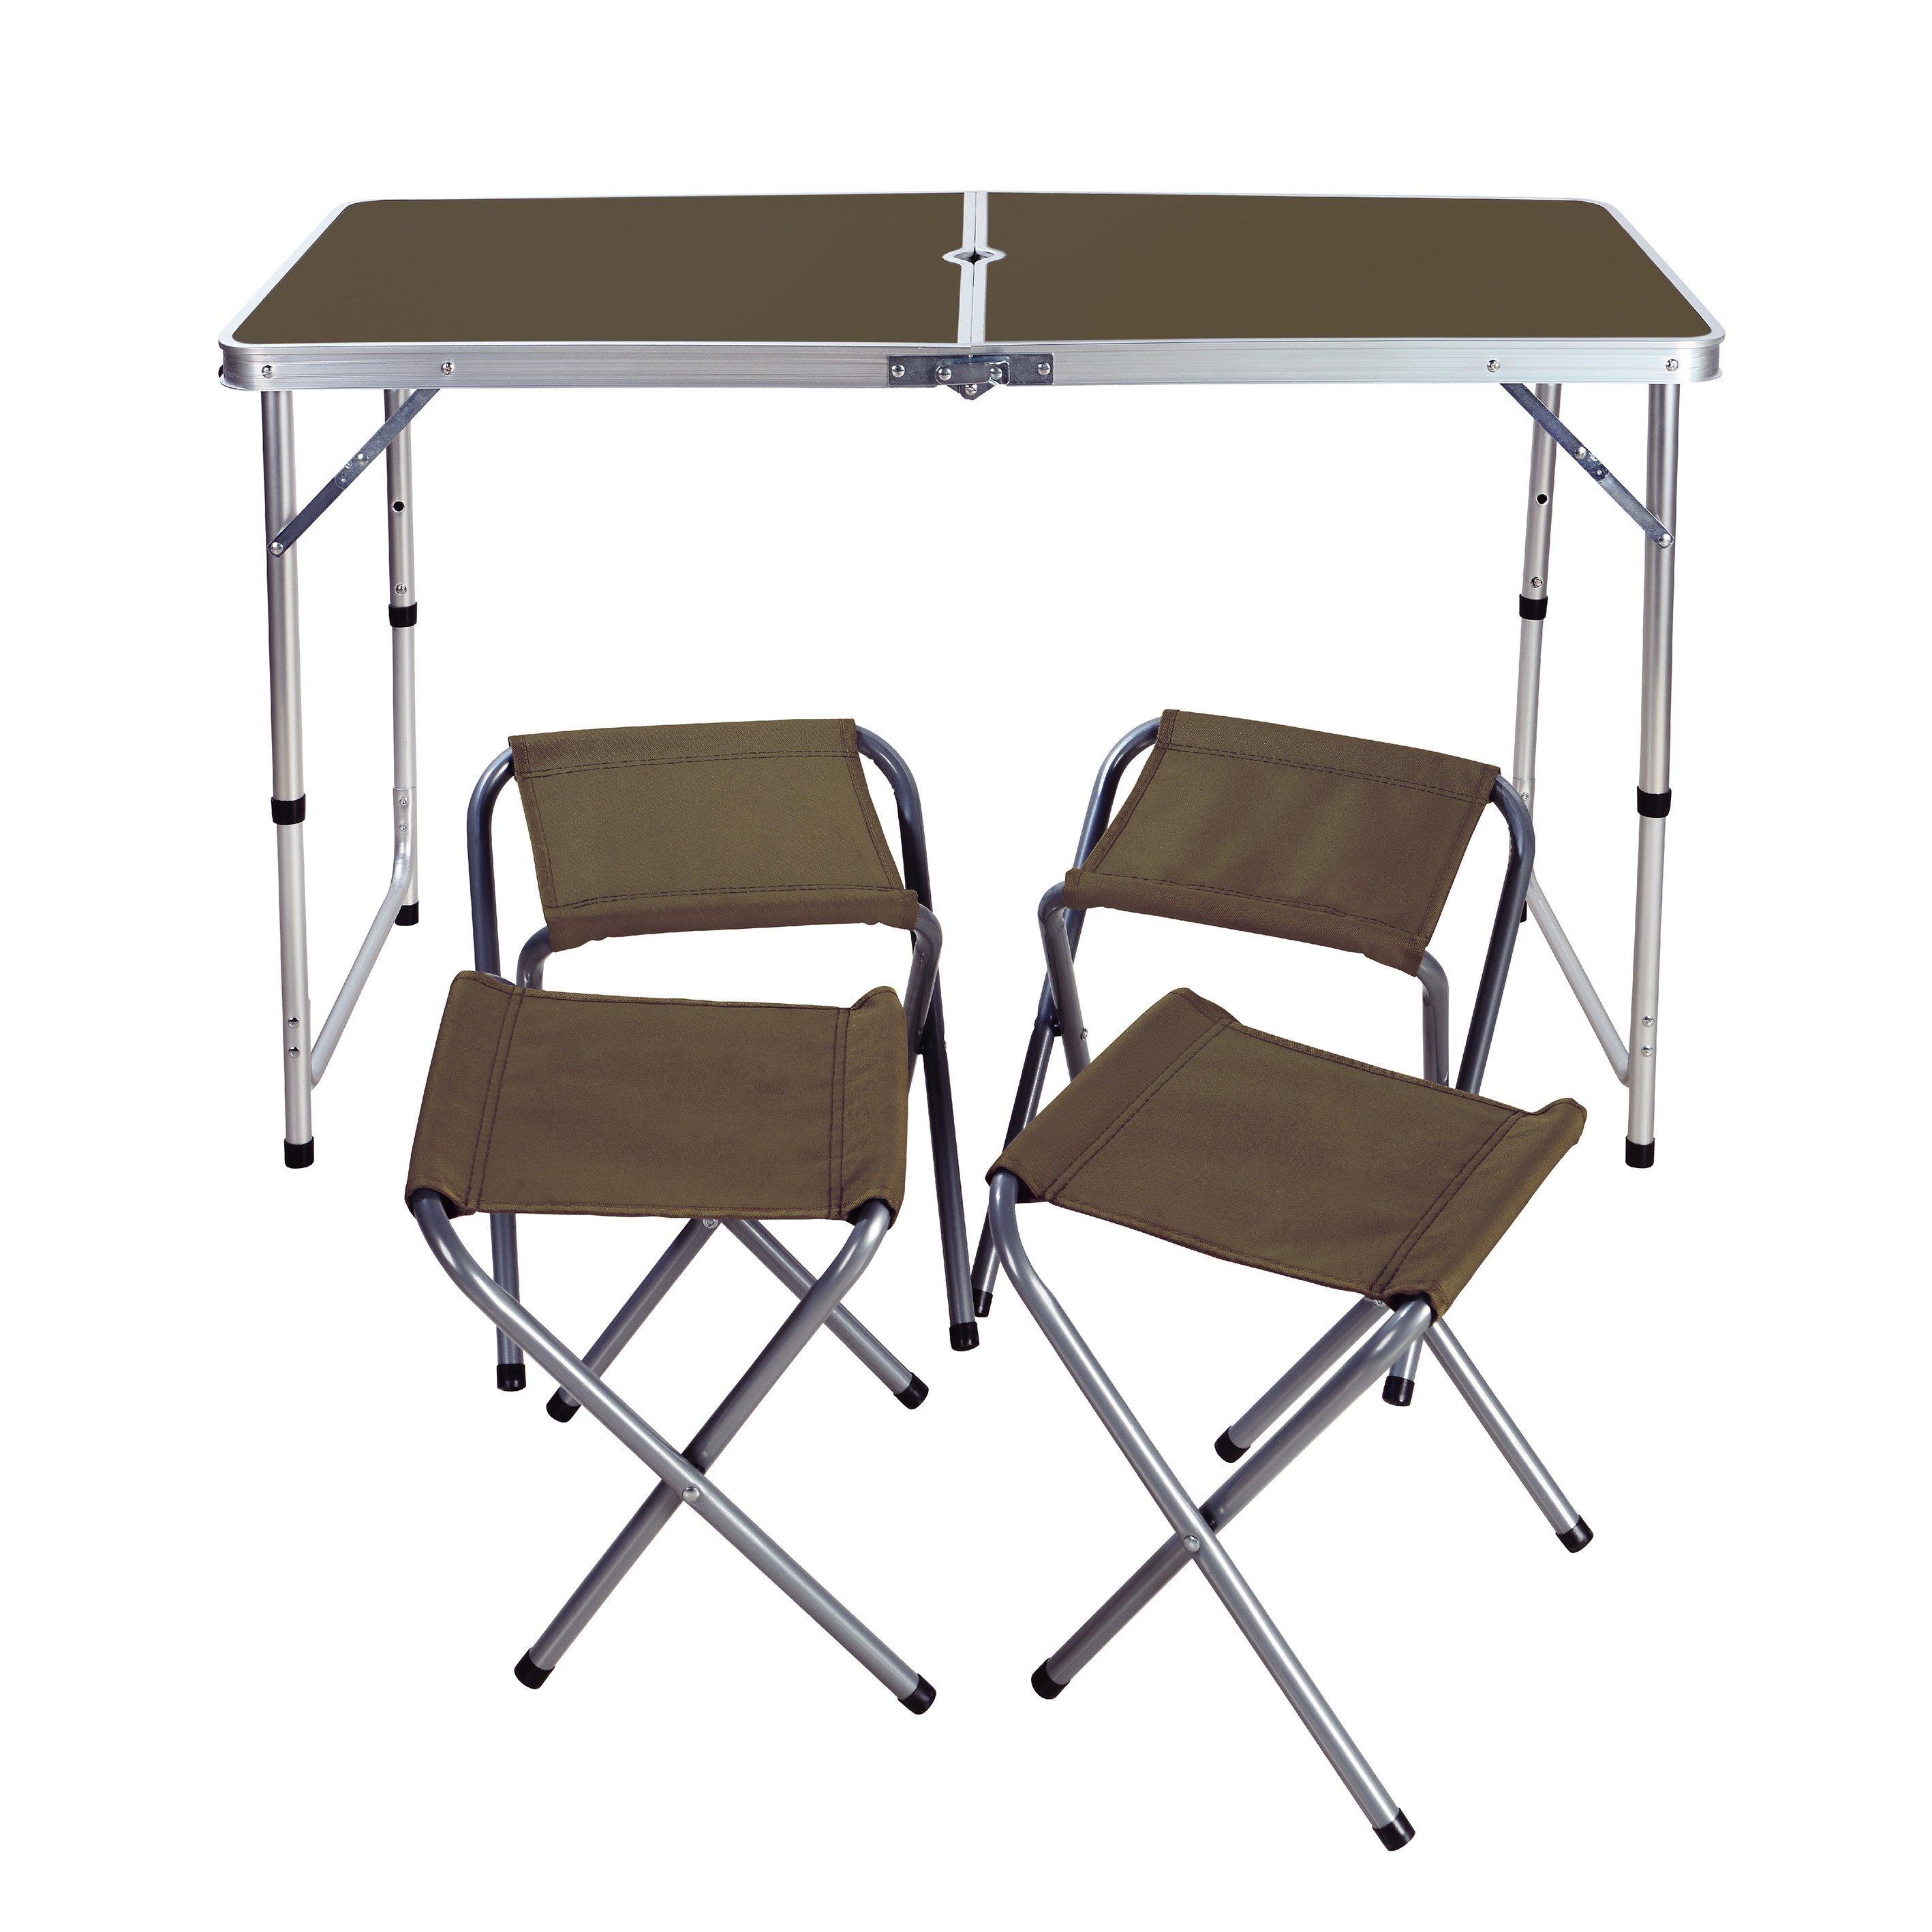 - China Outdoor Folding Table And Chair Sets Self-Driving Portable